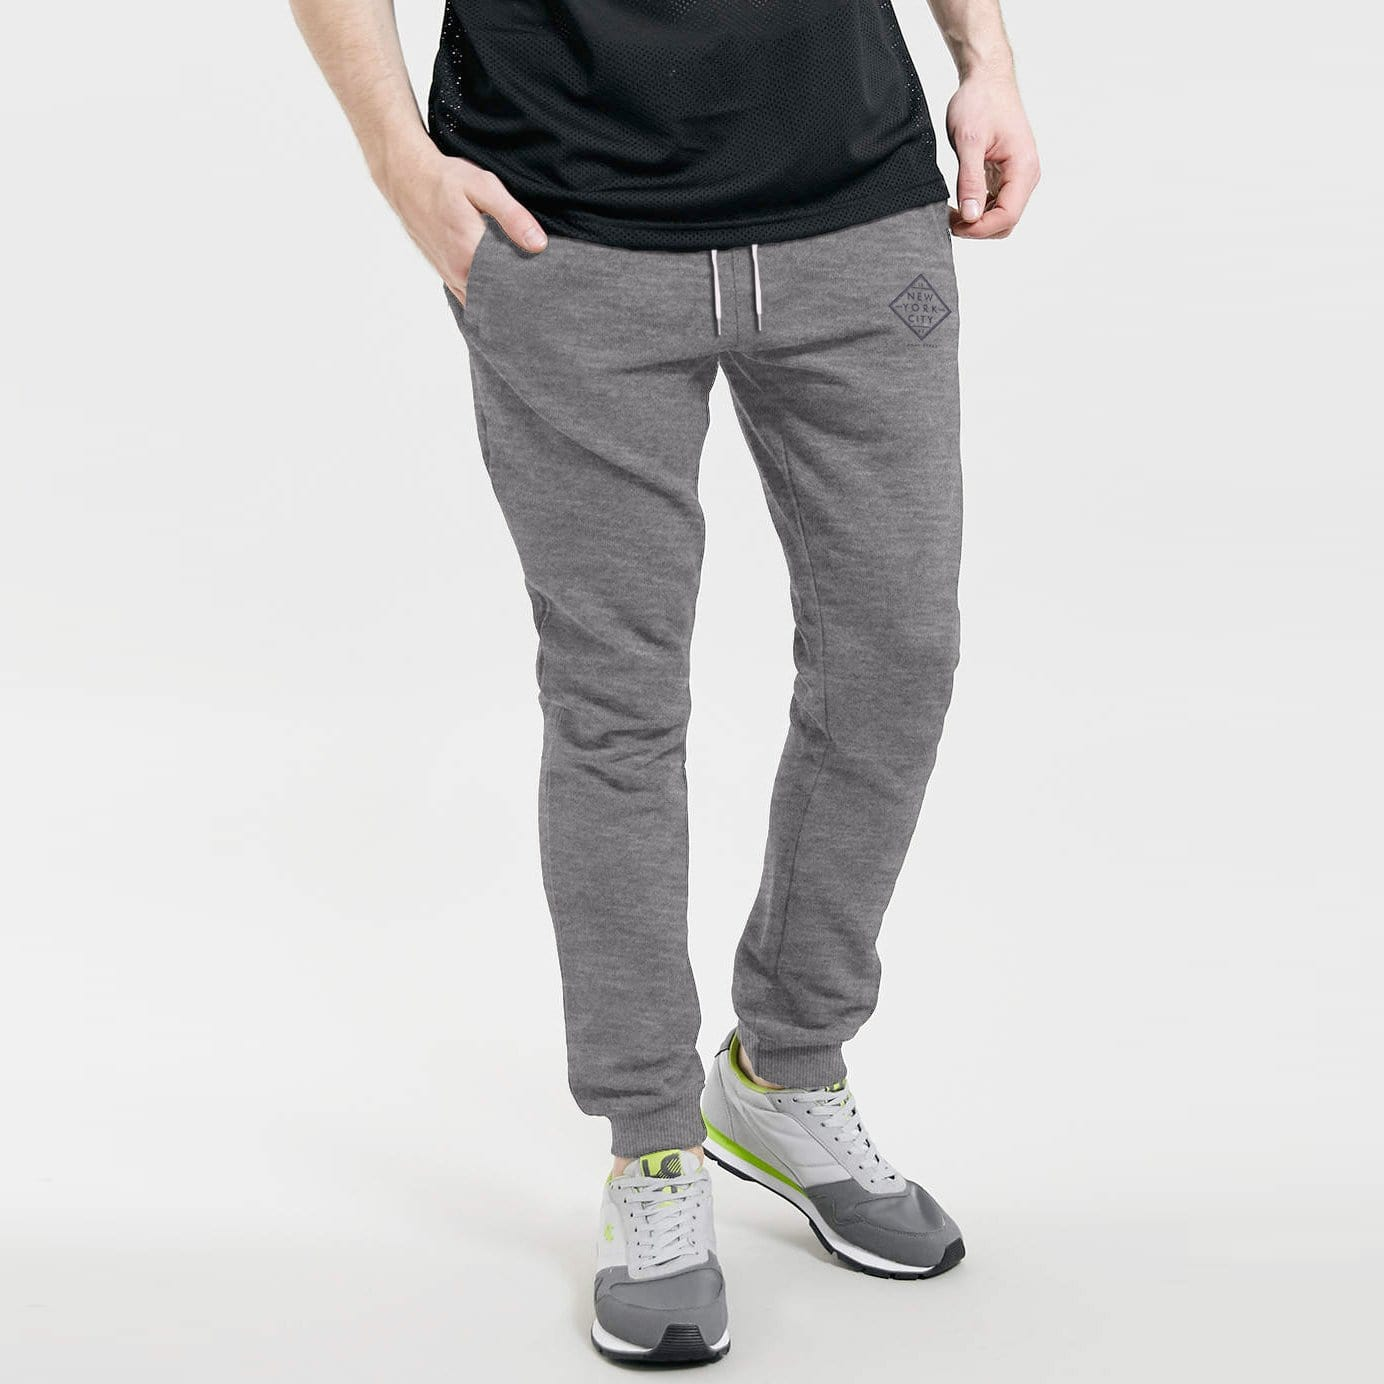 Henry James Men's Sweat Pants Grey Marl / S Men's Henry James Shaft Grey Sweat Pants